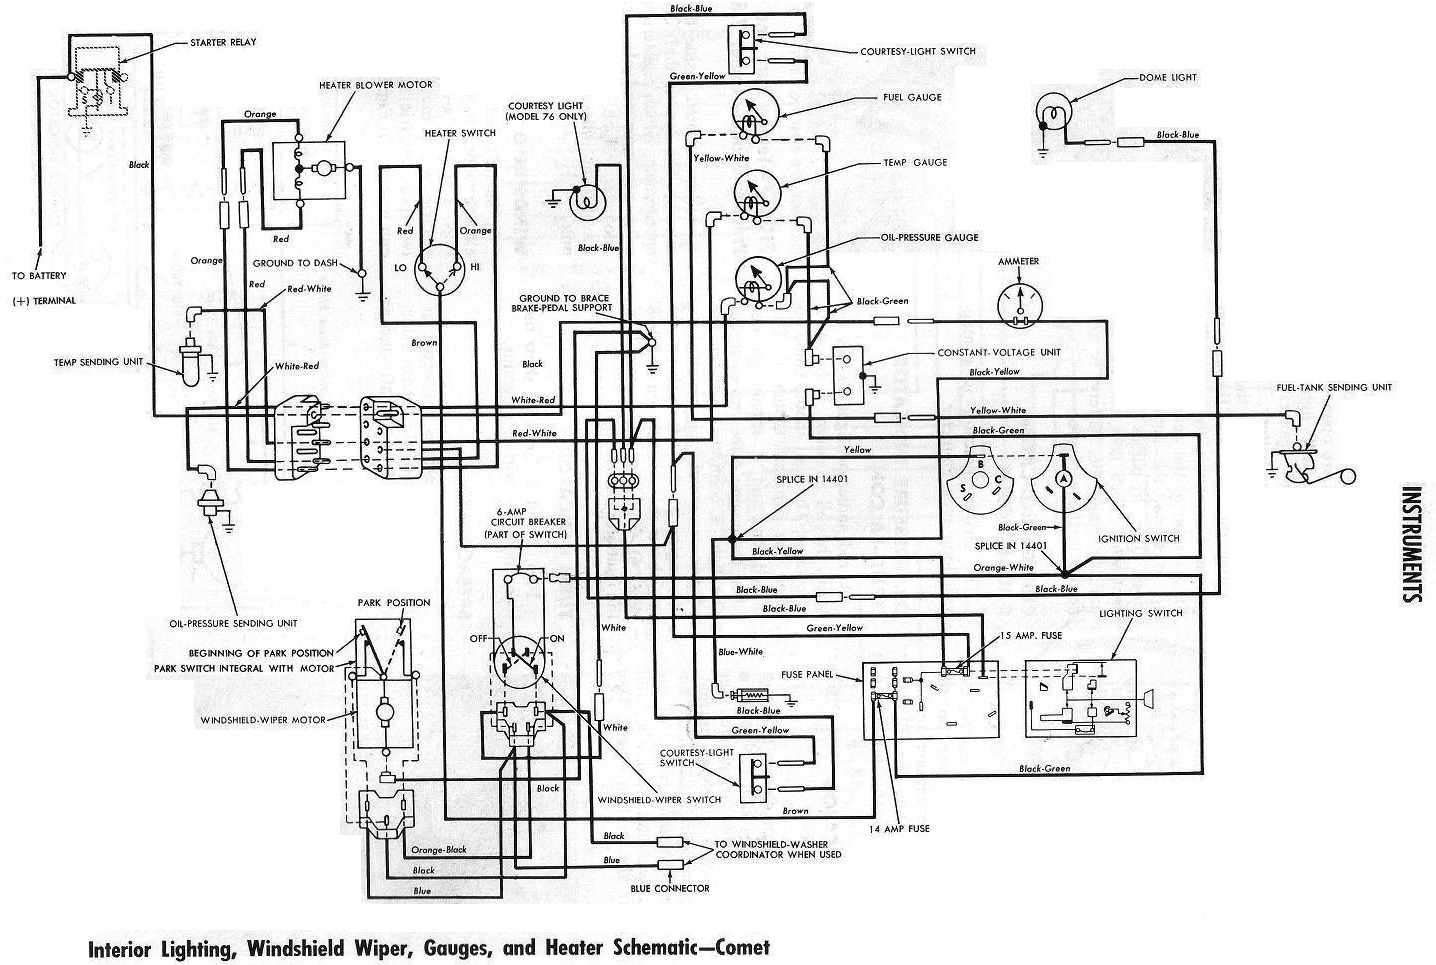 Comet Wiring Diagram Great Design Of 2001 Gmc Sierra Turn Signal